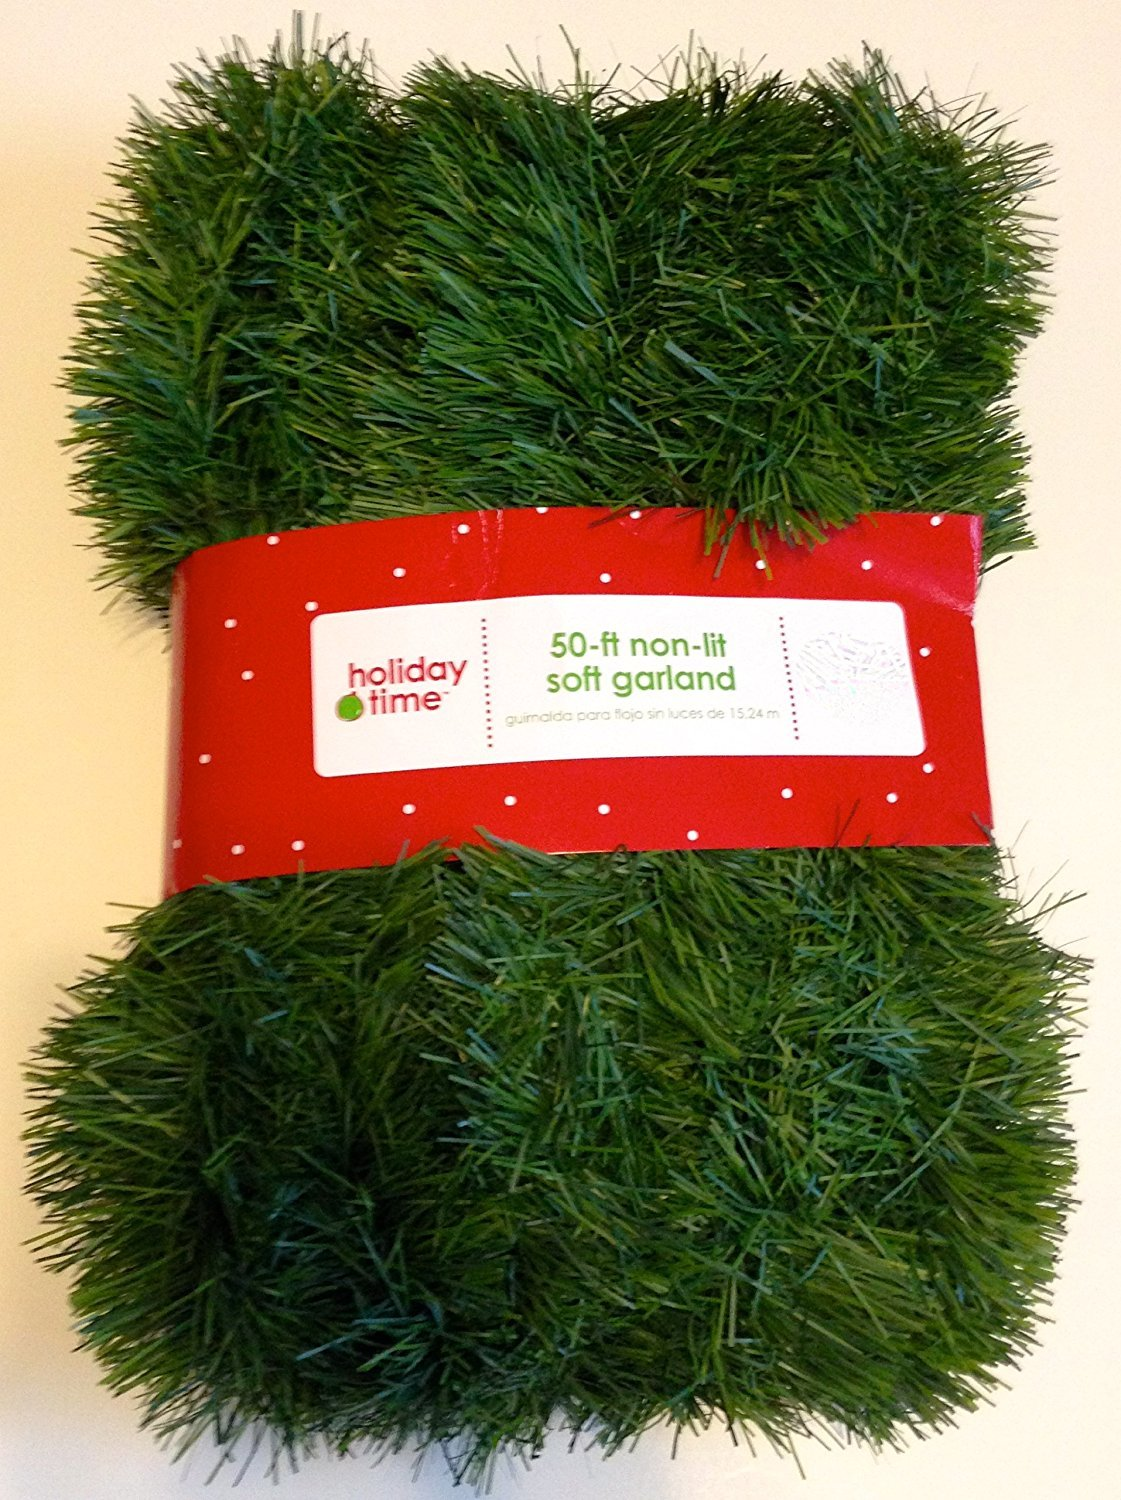 50 Foot Non-Lit Green Holiday Soft Garland : door garlands - pezcame.com